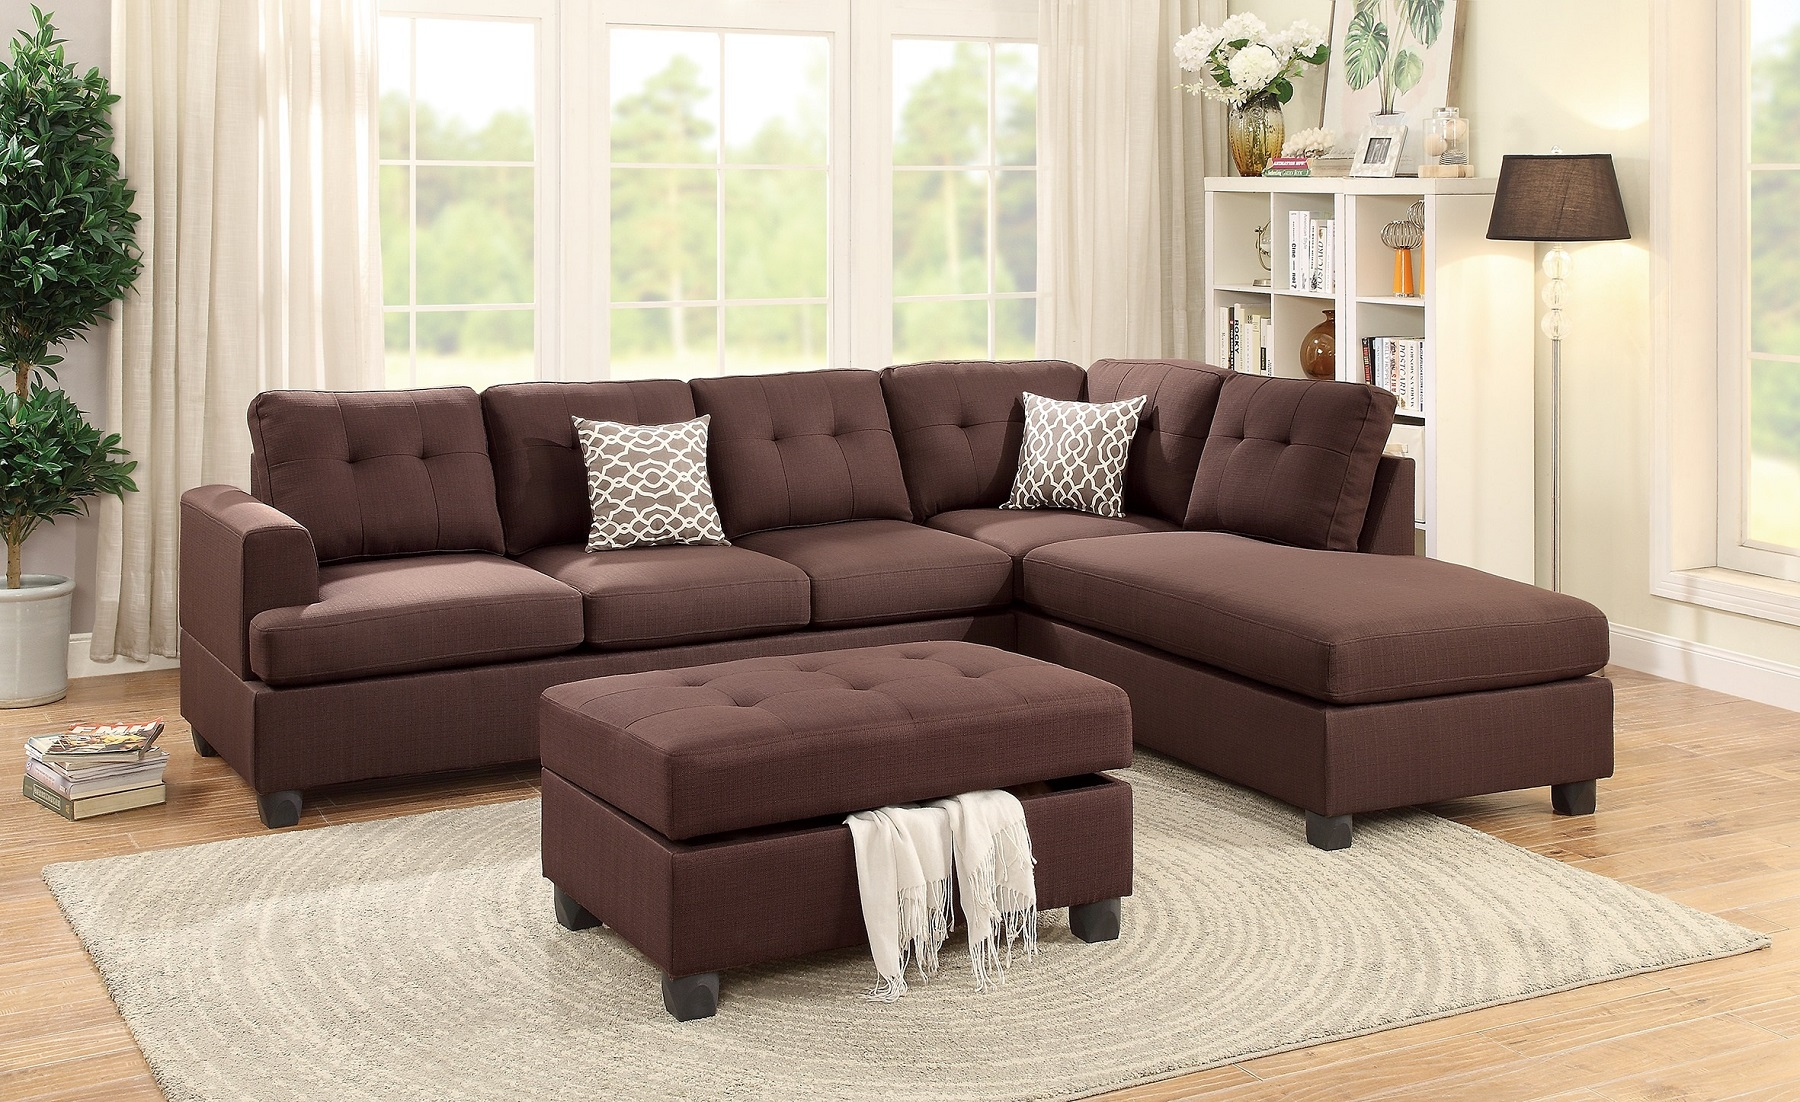 Superb Sectional Sofa Set Living Room 3Pcs Set Sofa Reversible Chaise Storage Ottoman Tufted Couch Decorative Pillows Andrewgaddart Wooden Chair Designs For Living Room Andrewgaddartcom